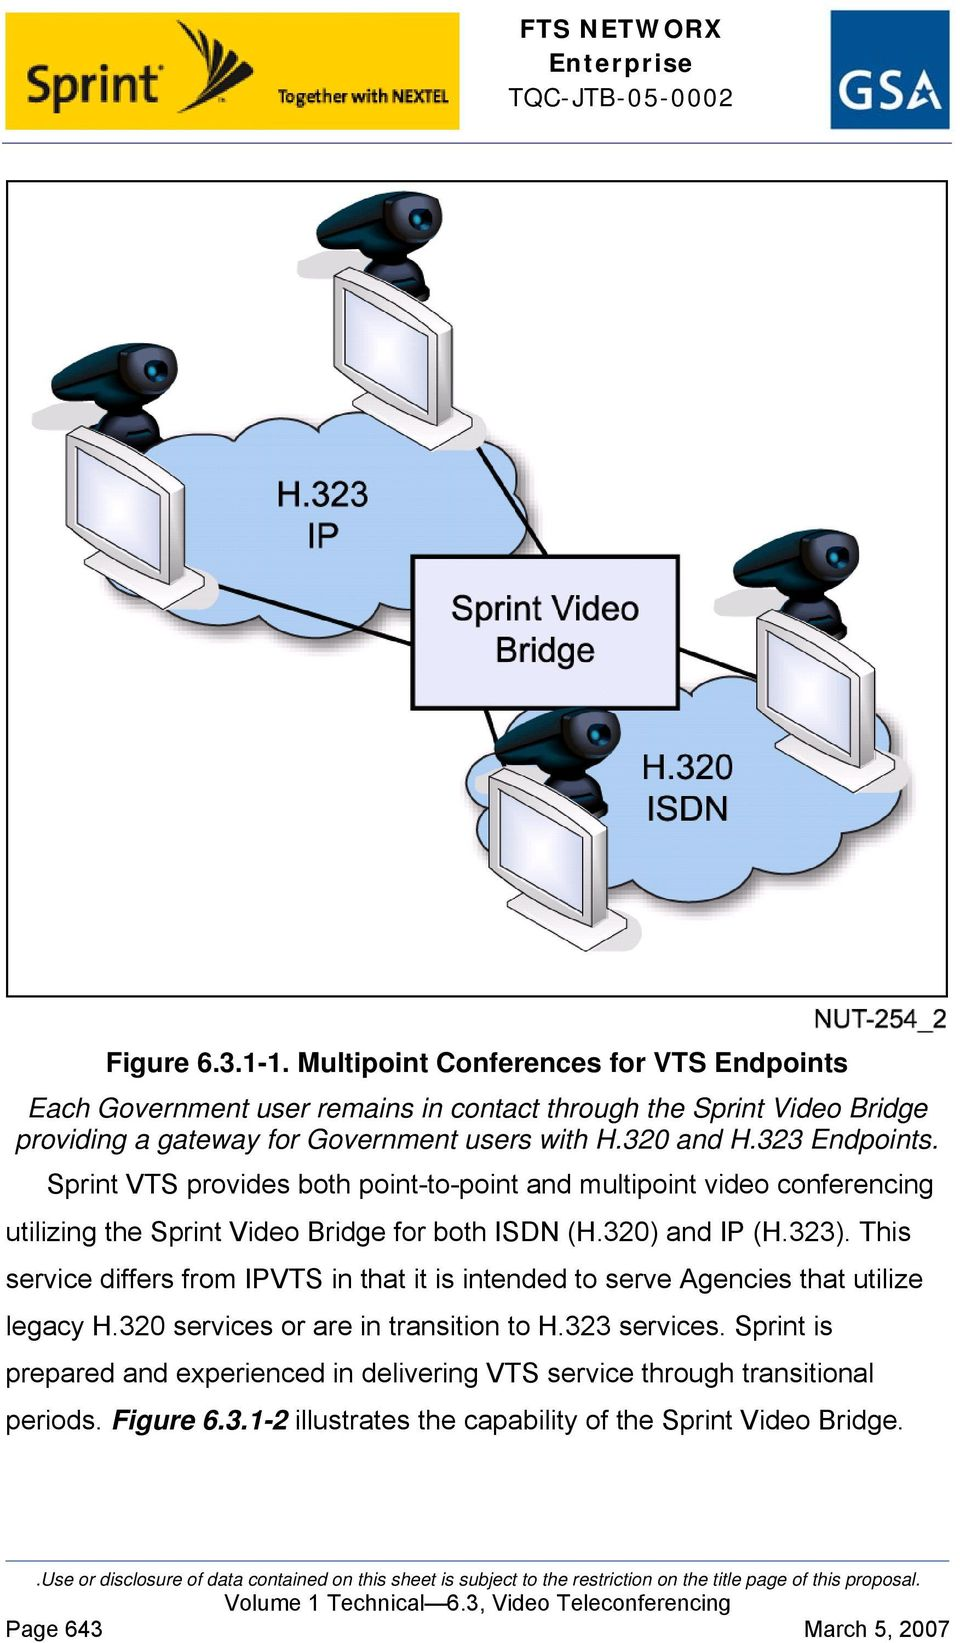 320 and H.323 Endpoints. Sprint VTS provides both point-to-point and multipoint video conferencing utilizing the Sprint Video Bridge for both ISDN (H.320) and IP (H.323).